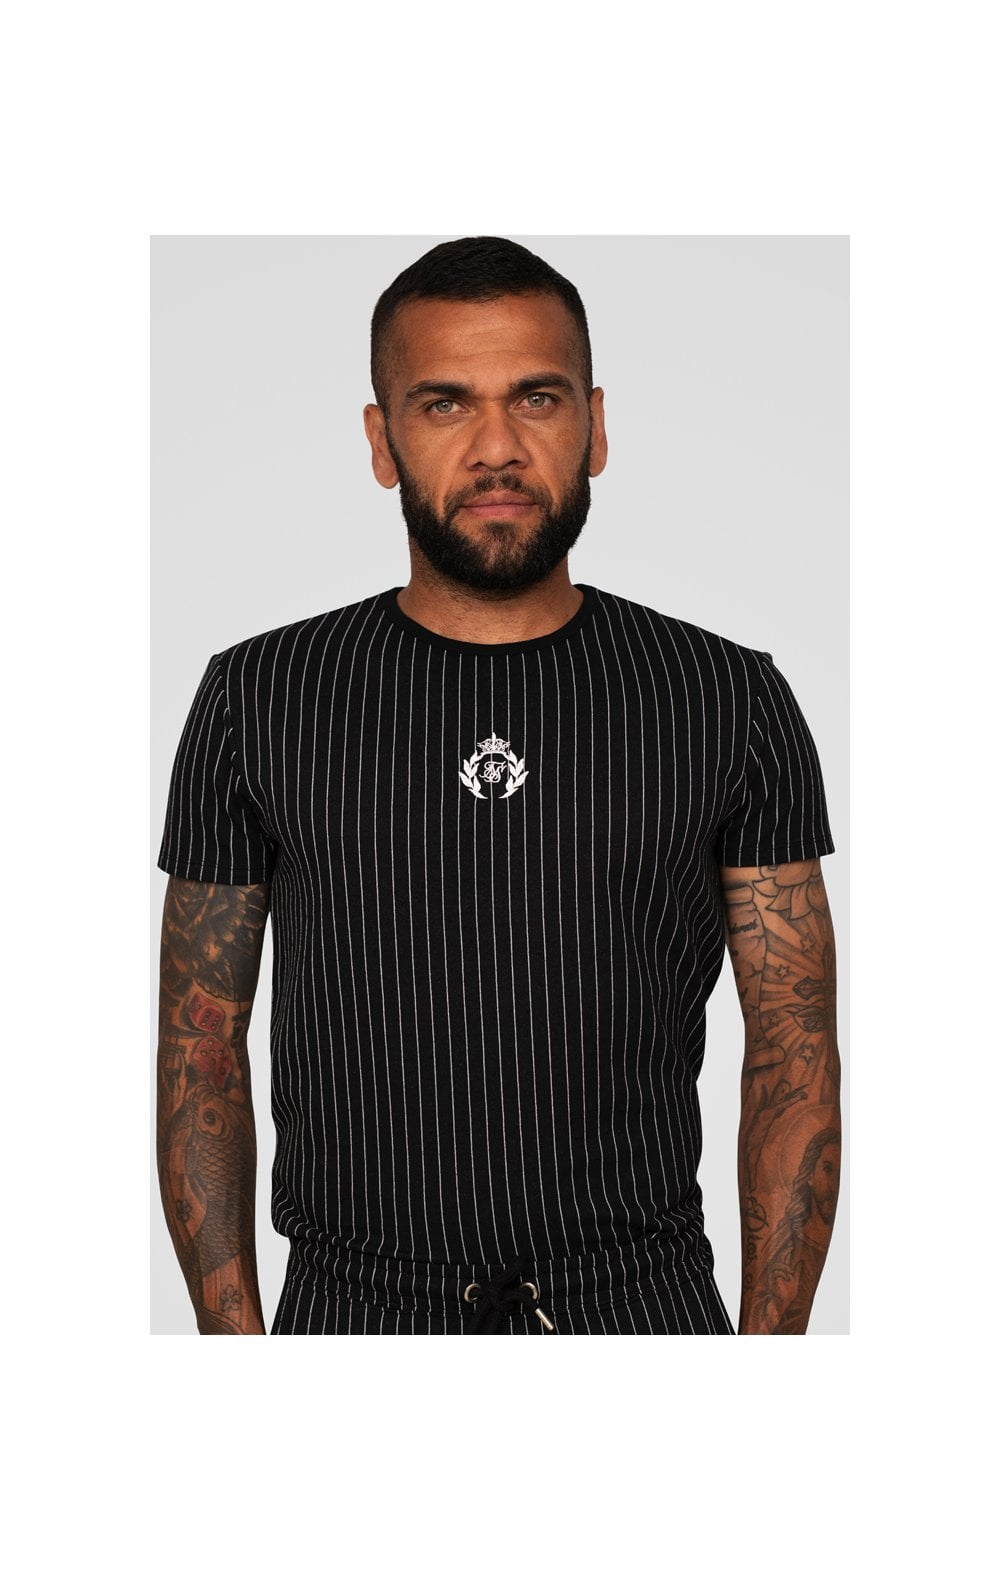 SikSilk x Dani Alves Curved Hem Gym Tee - Black & White MEN SIZES TOP: Small